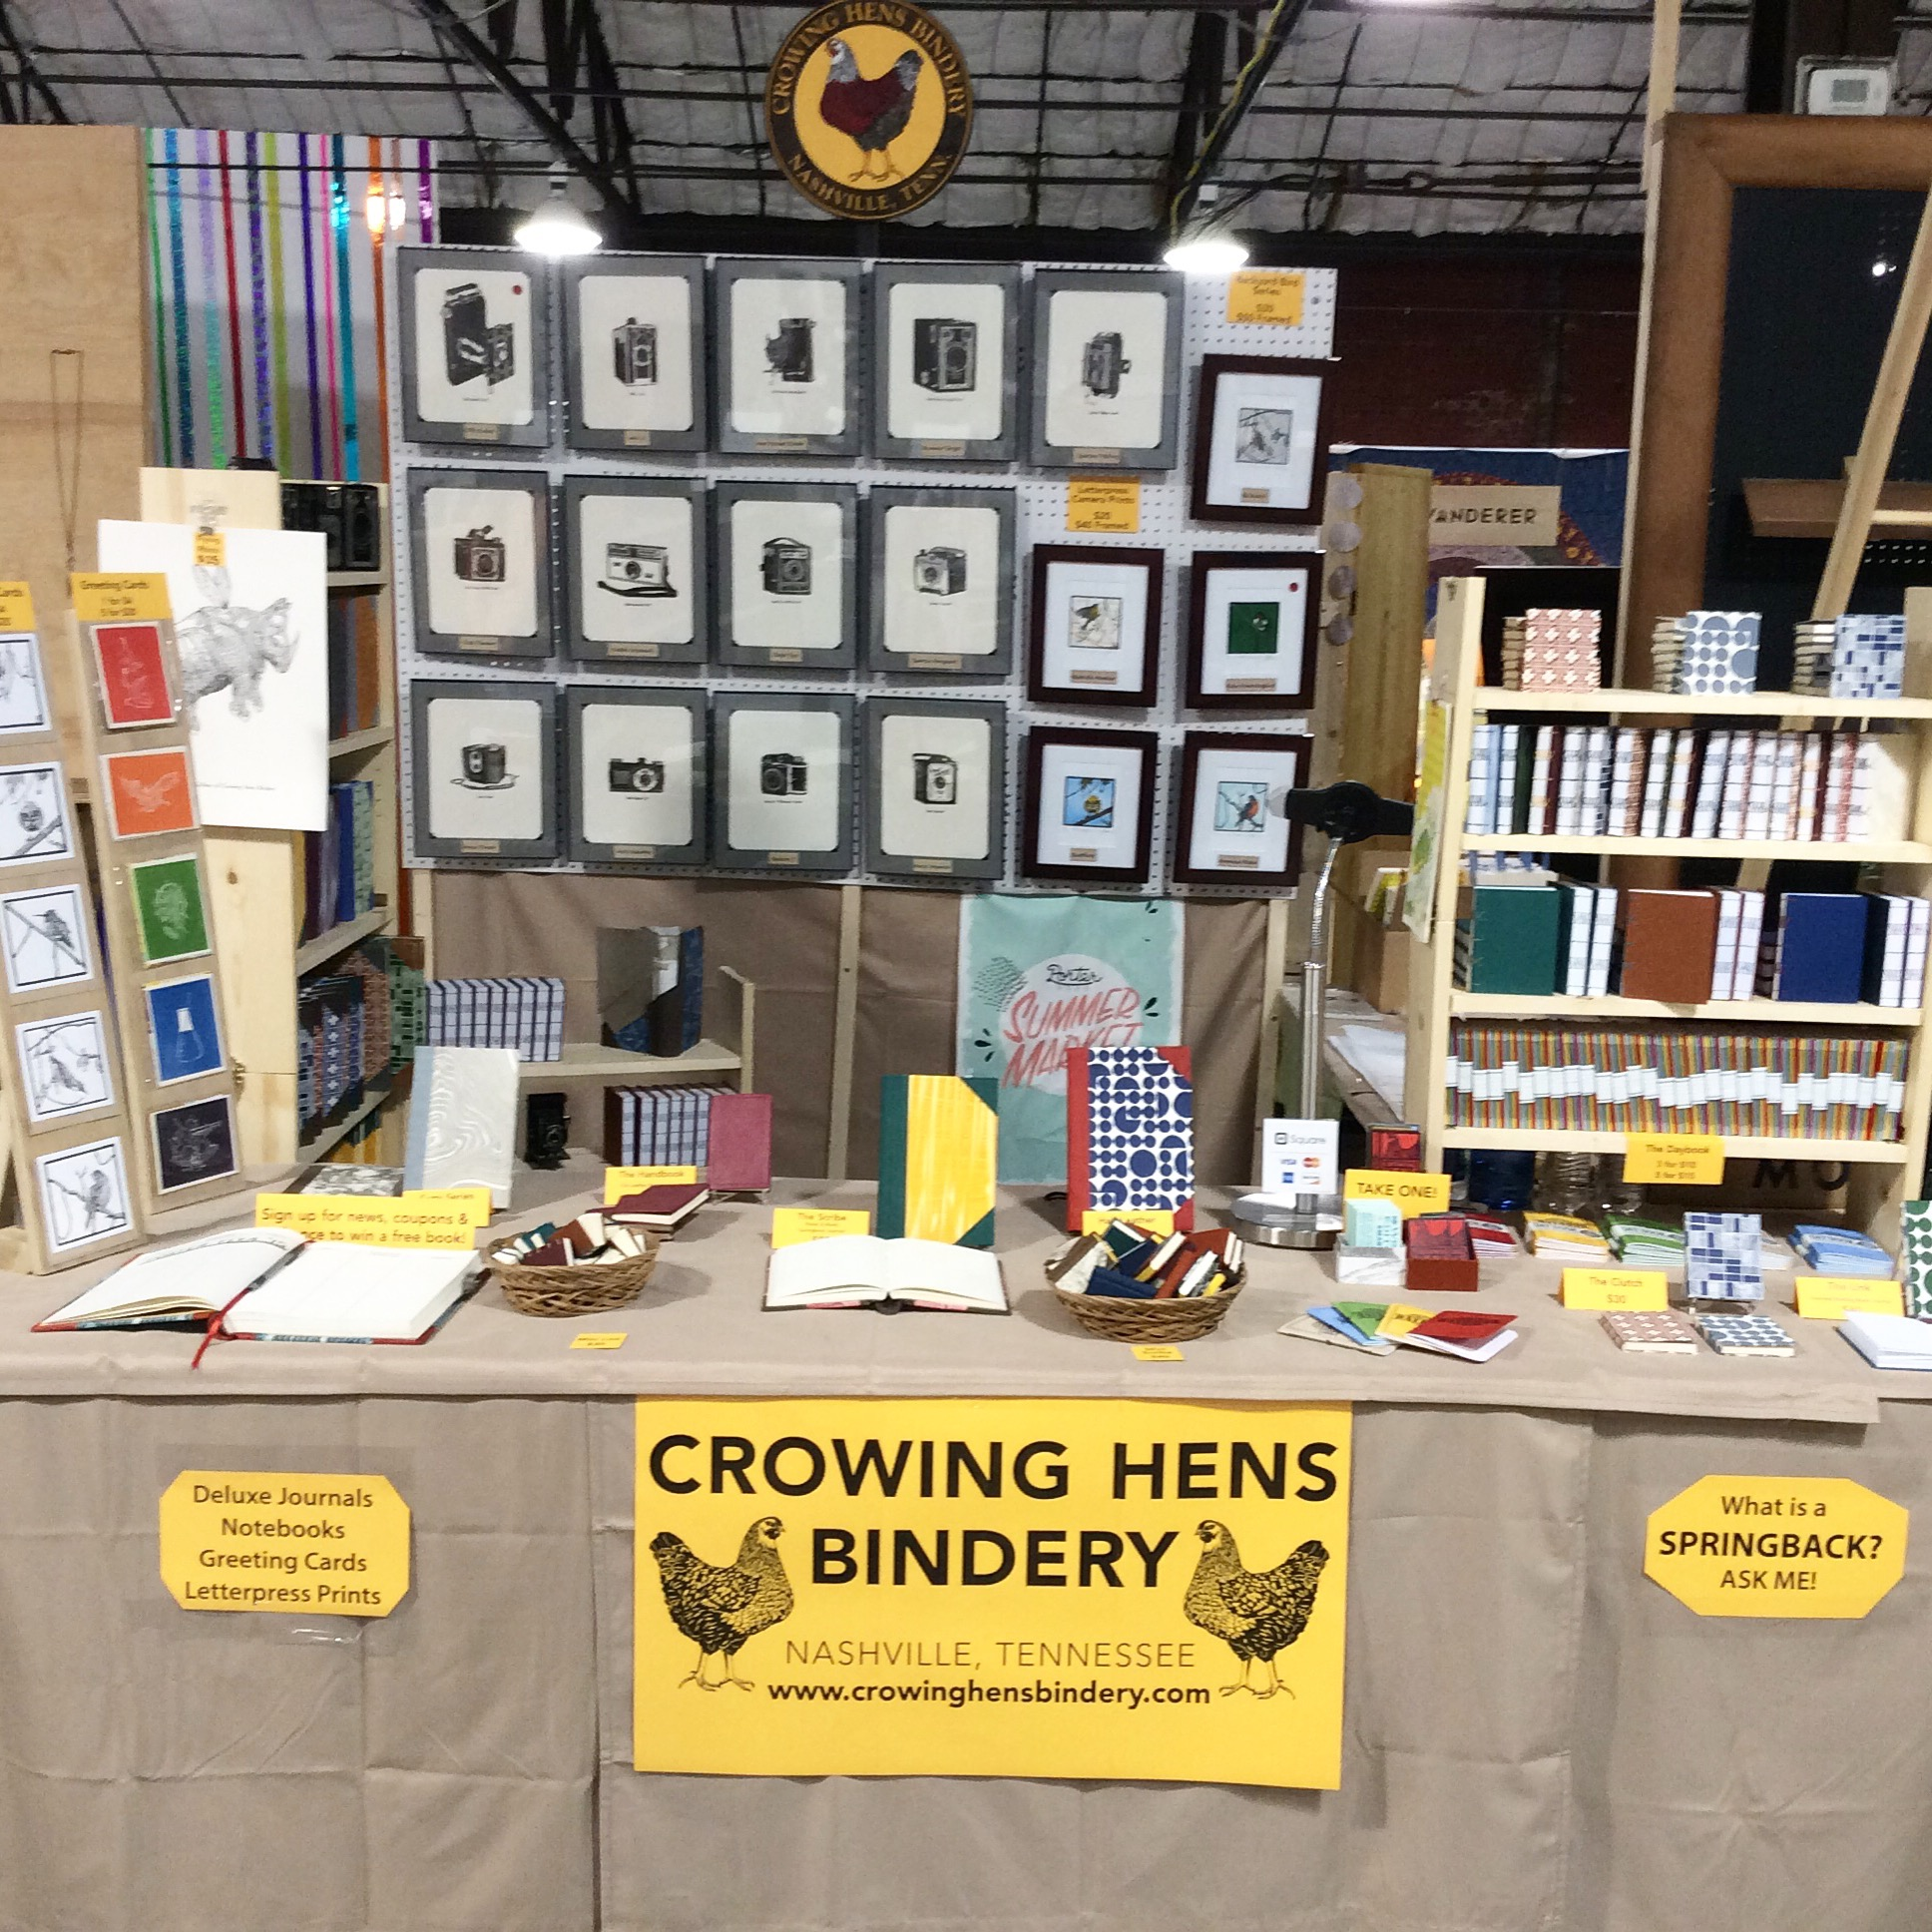 First time designing a booth setup. Many books to touch and hold!